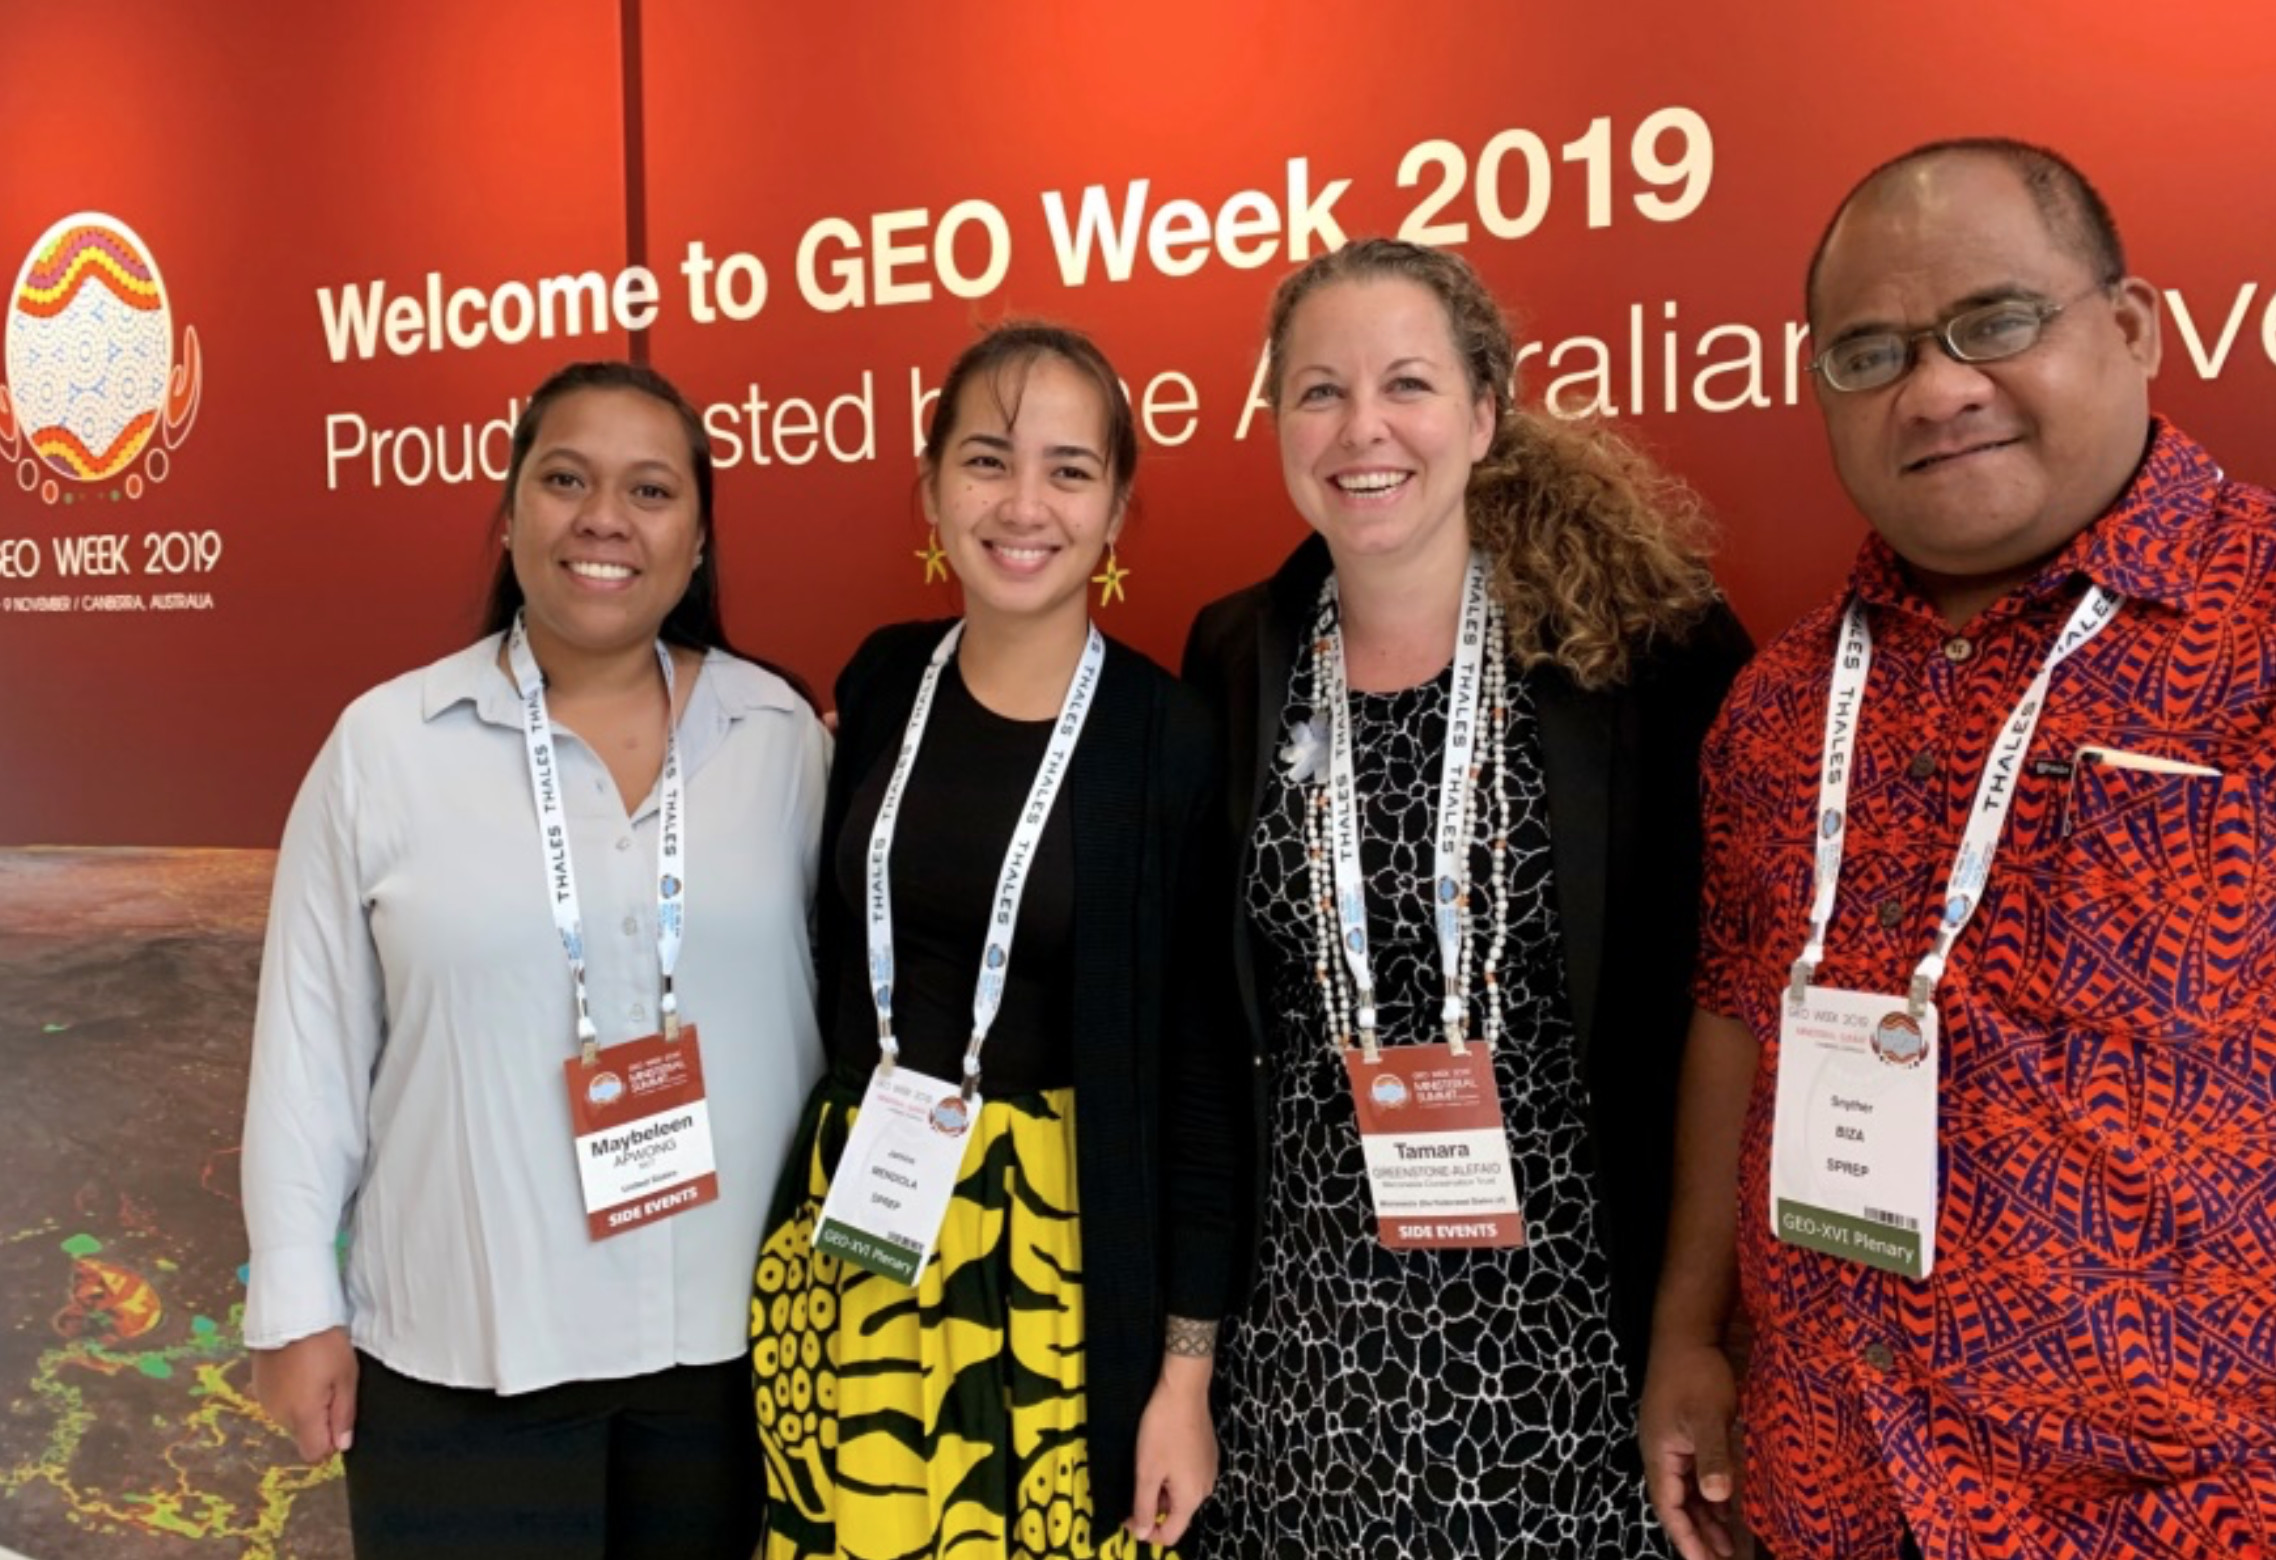 The Micronesia Conservation Trust team at GEO Week in Canberra, Australia in November 2019.